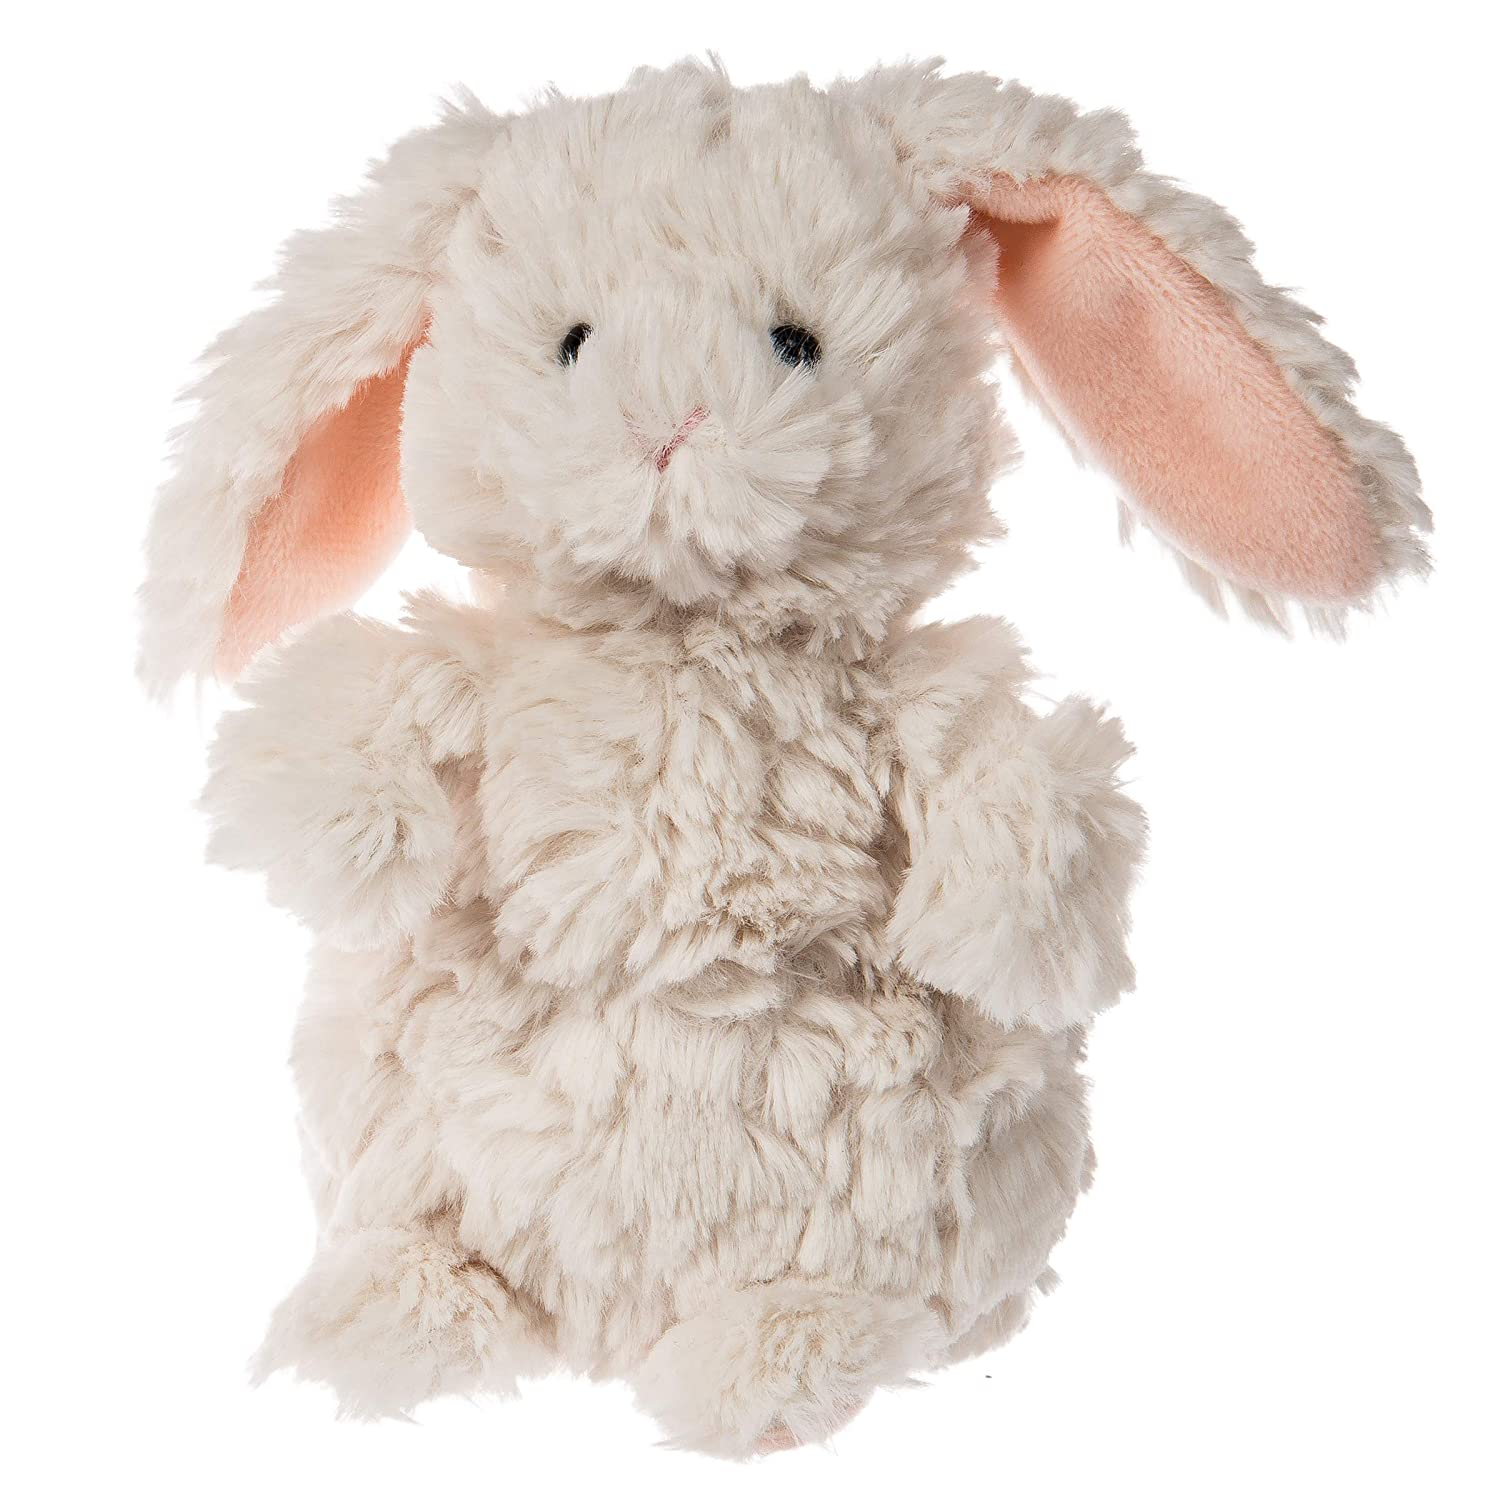 "B005Z23S3Y Mary Meyer Putty Stuffed Animal Soft Toy, Puttling Bunny, 6"" 81jJJnh1EVL"